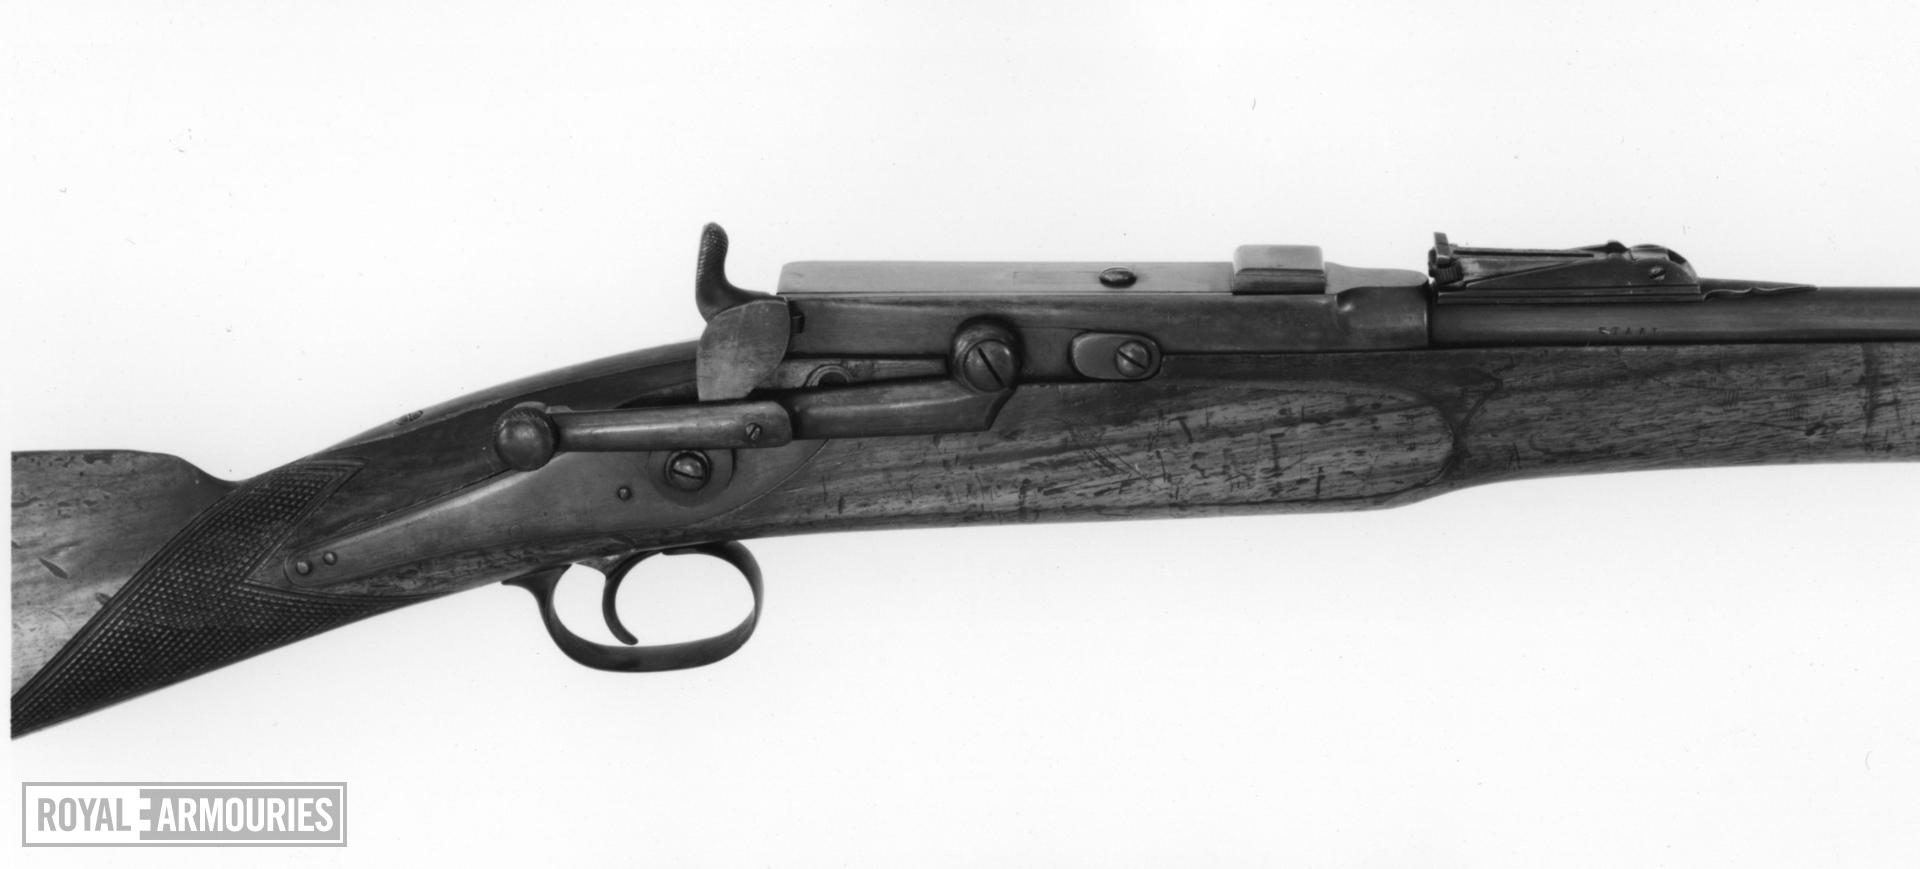 Rimfire breech-loading magazine military rifle - By Larsen Experimental design, Staal Patent